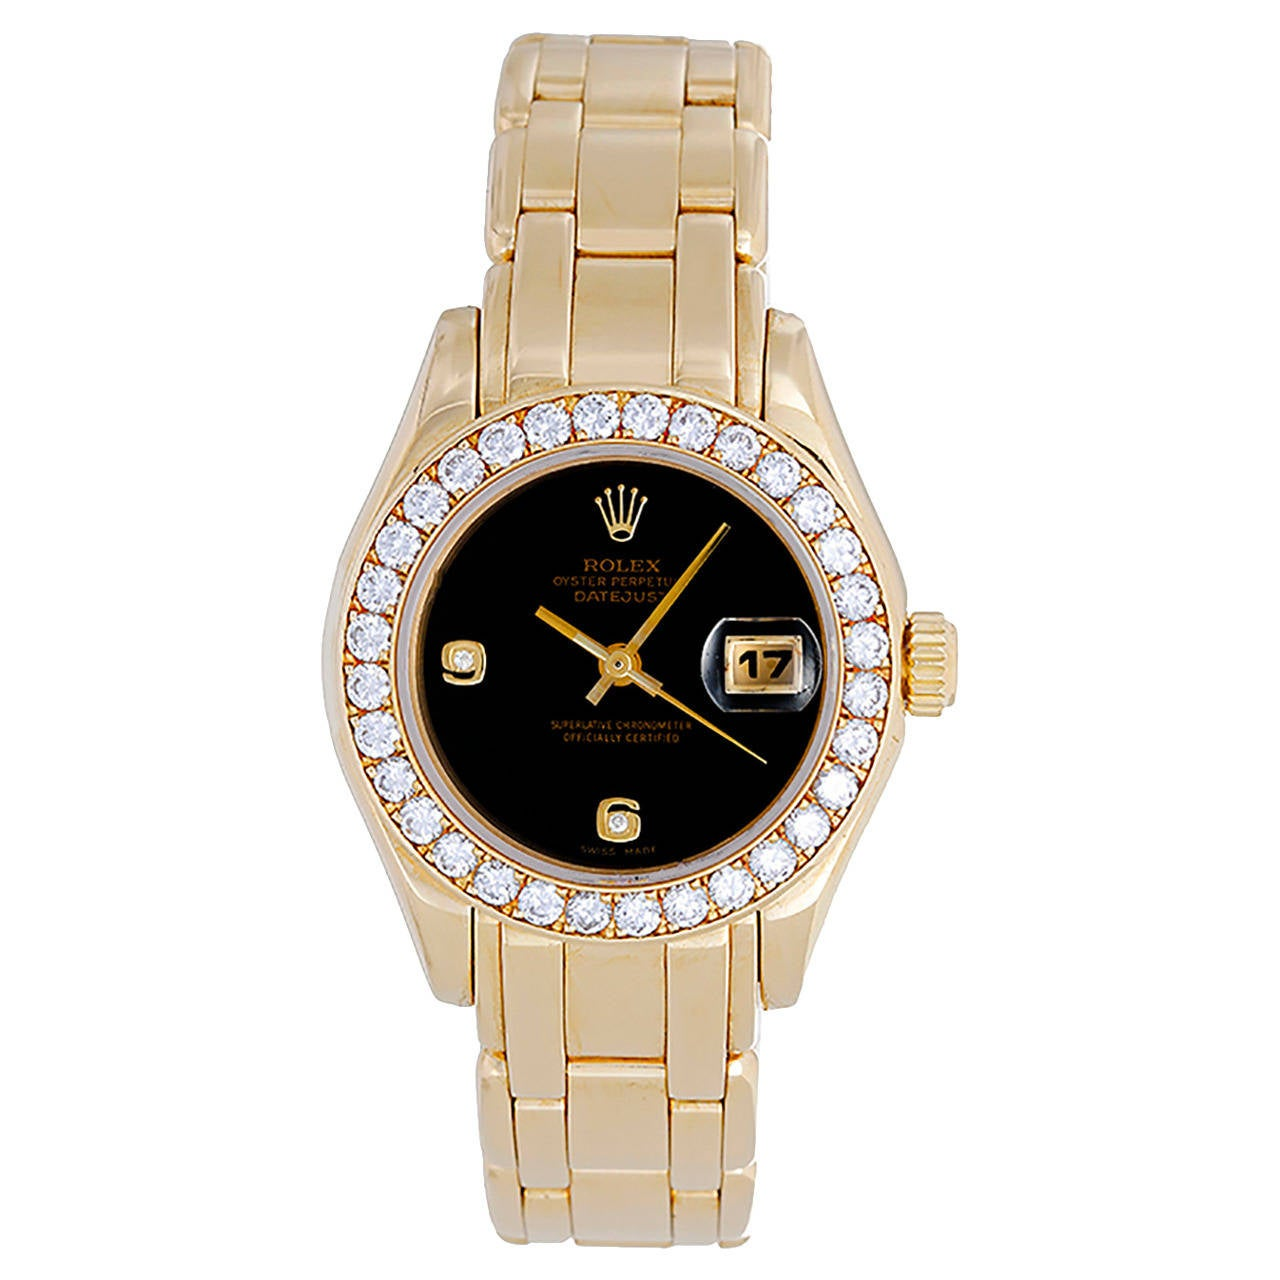 Rolex Lady's Yellow Gold Diamond Masterpiece Pearlmaster Wristwatch Ref 69298 For Sale